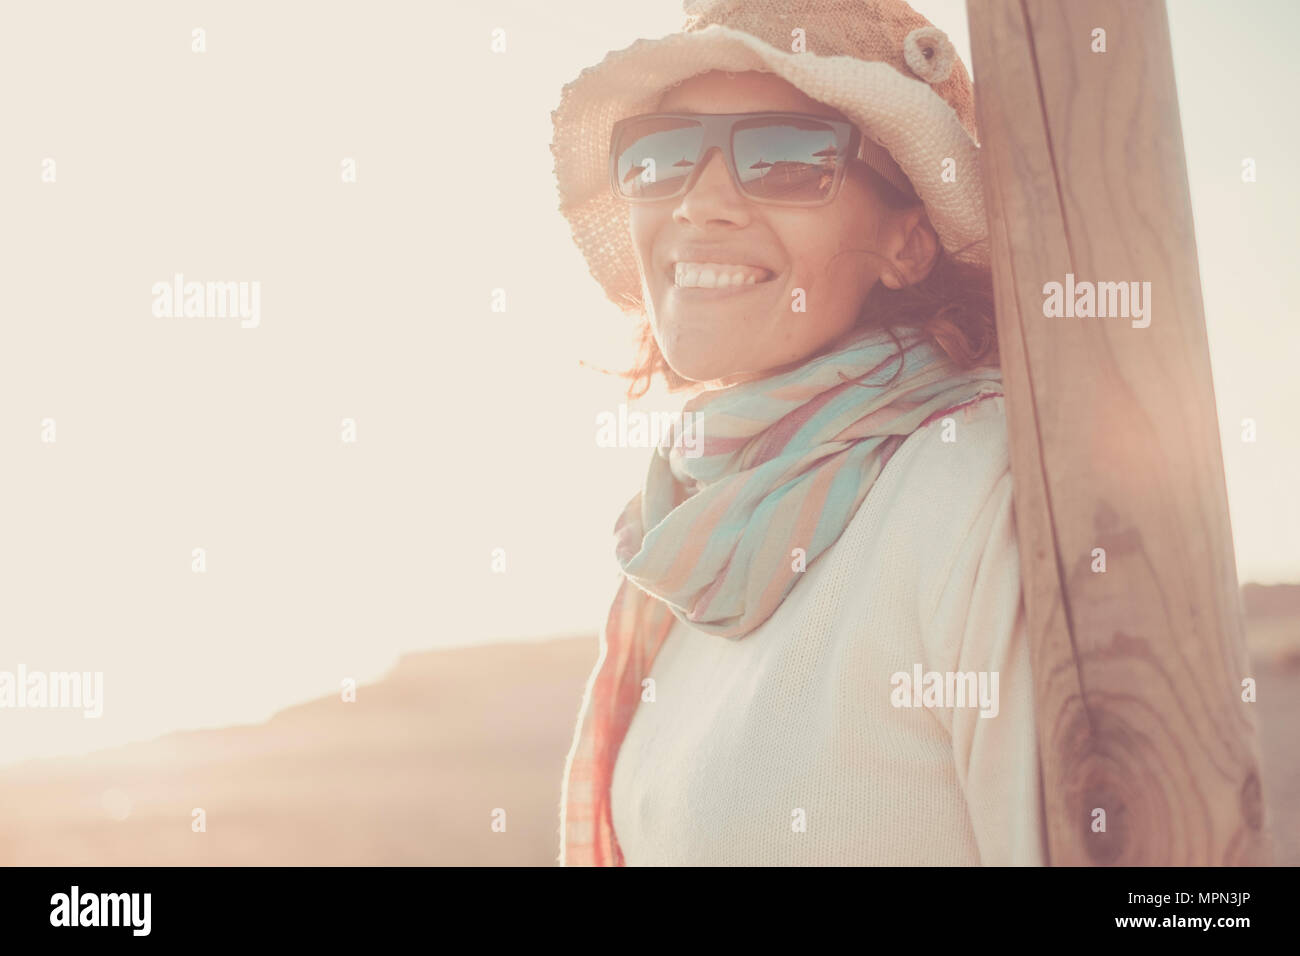 beautiful caucasian woman smile enjoying the outdoor lifestyle with a sunny day in tenerife. sun on her cute face wearing sunglasses. travel and vacat Stock Photo